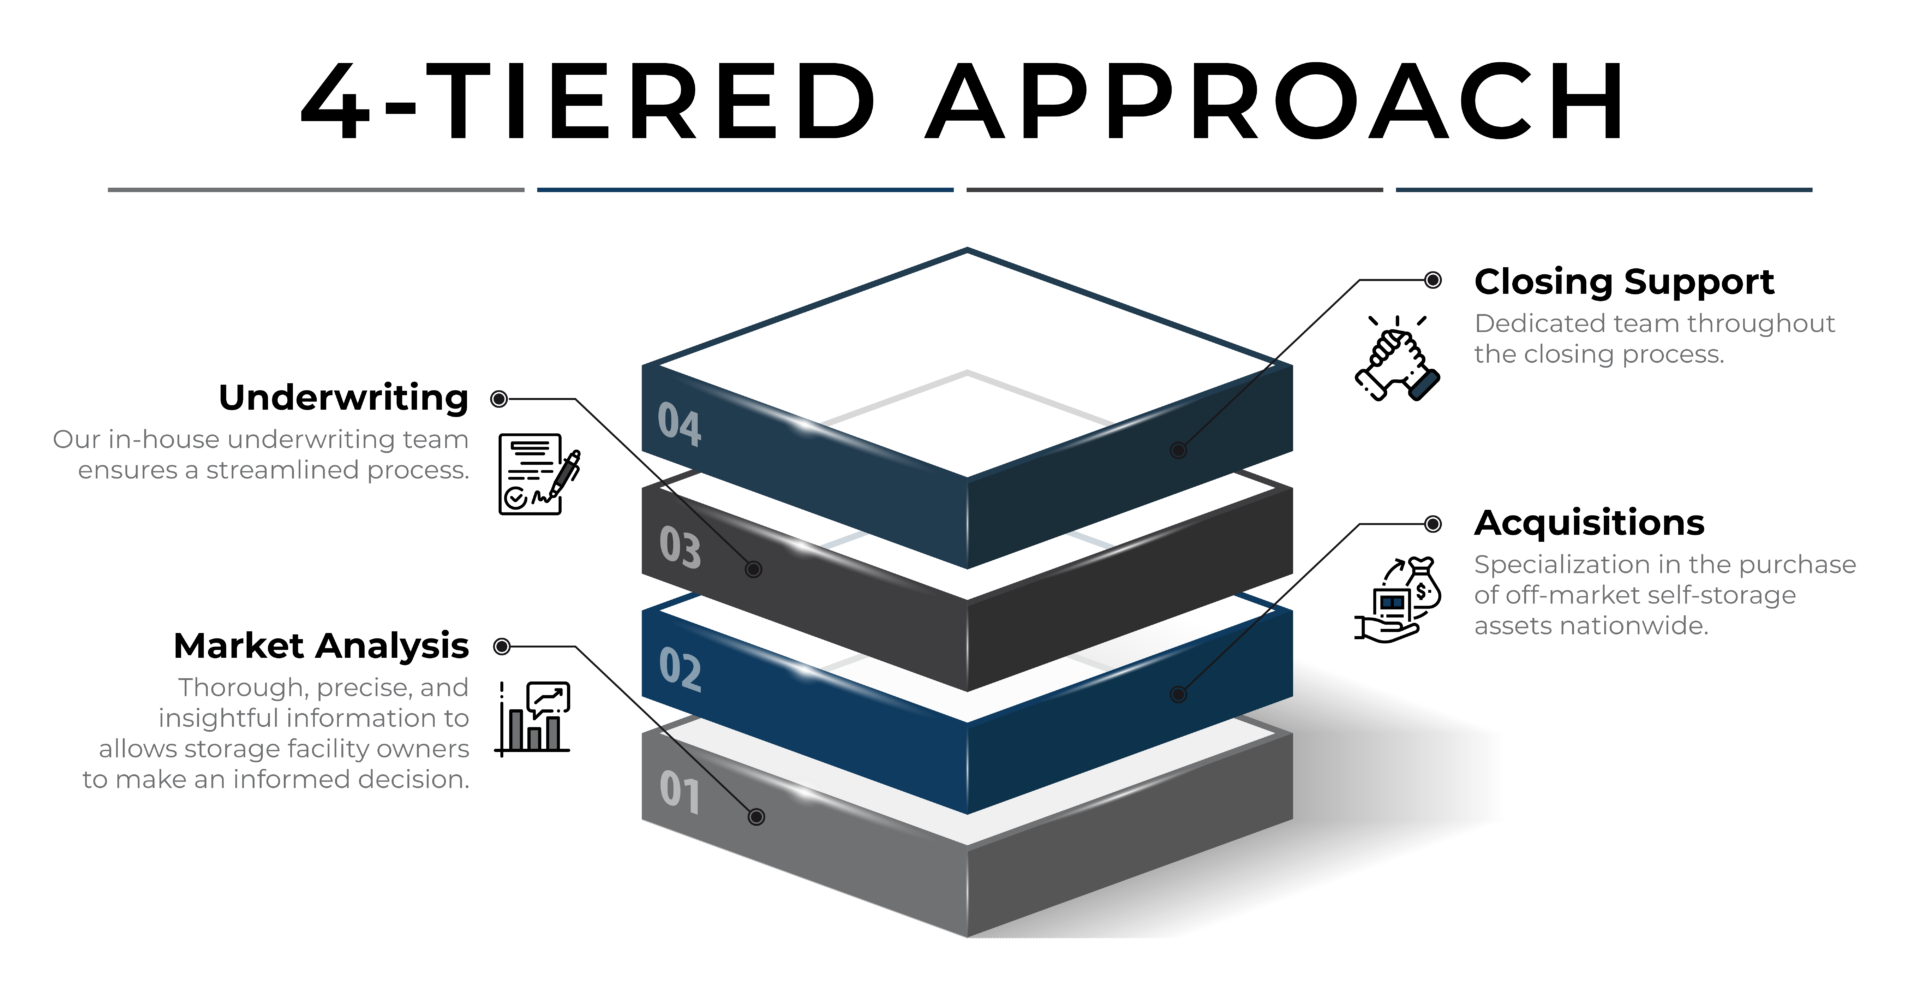 TSAG 4-tiered approach to selling storage facilities